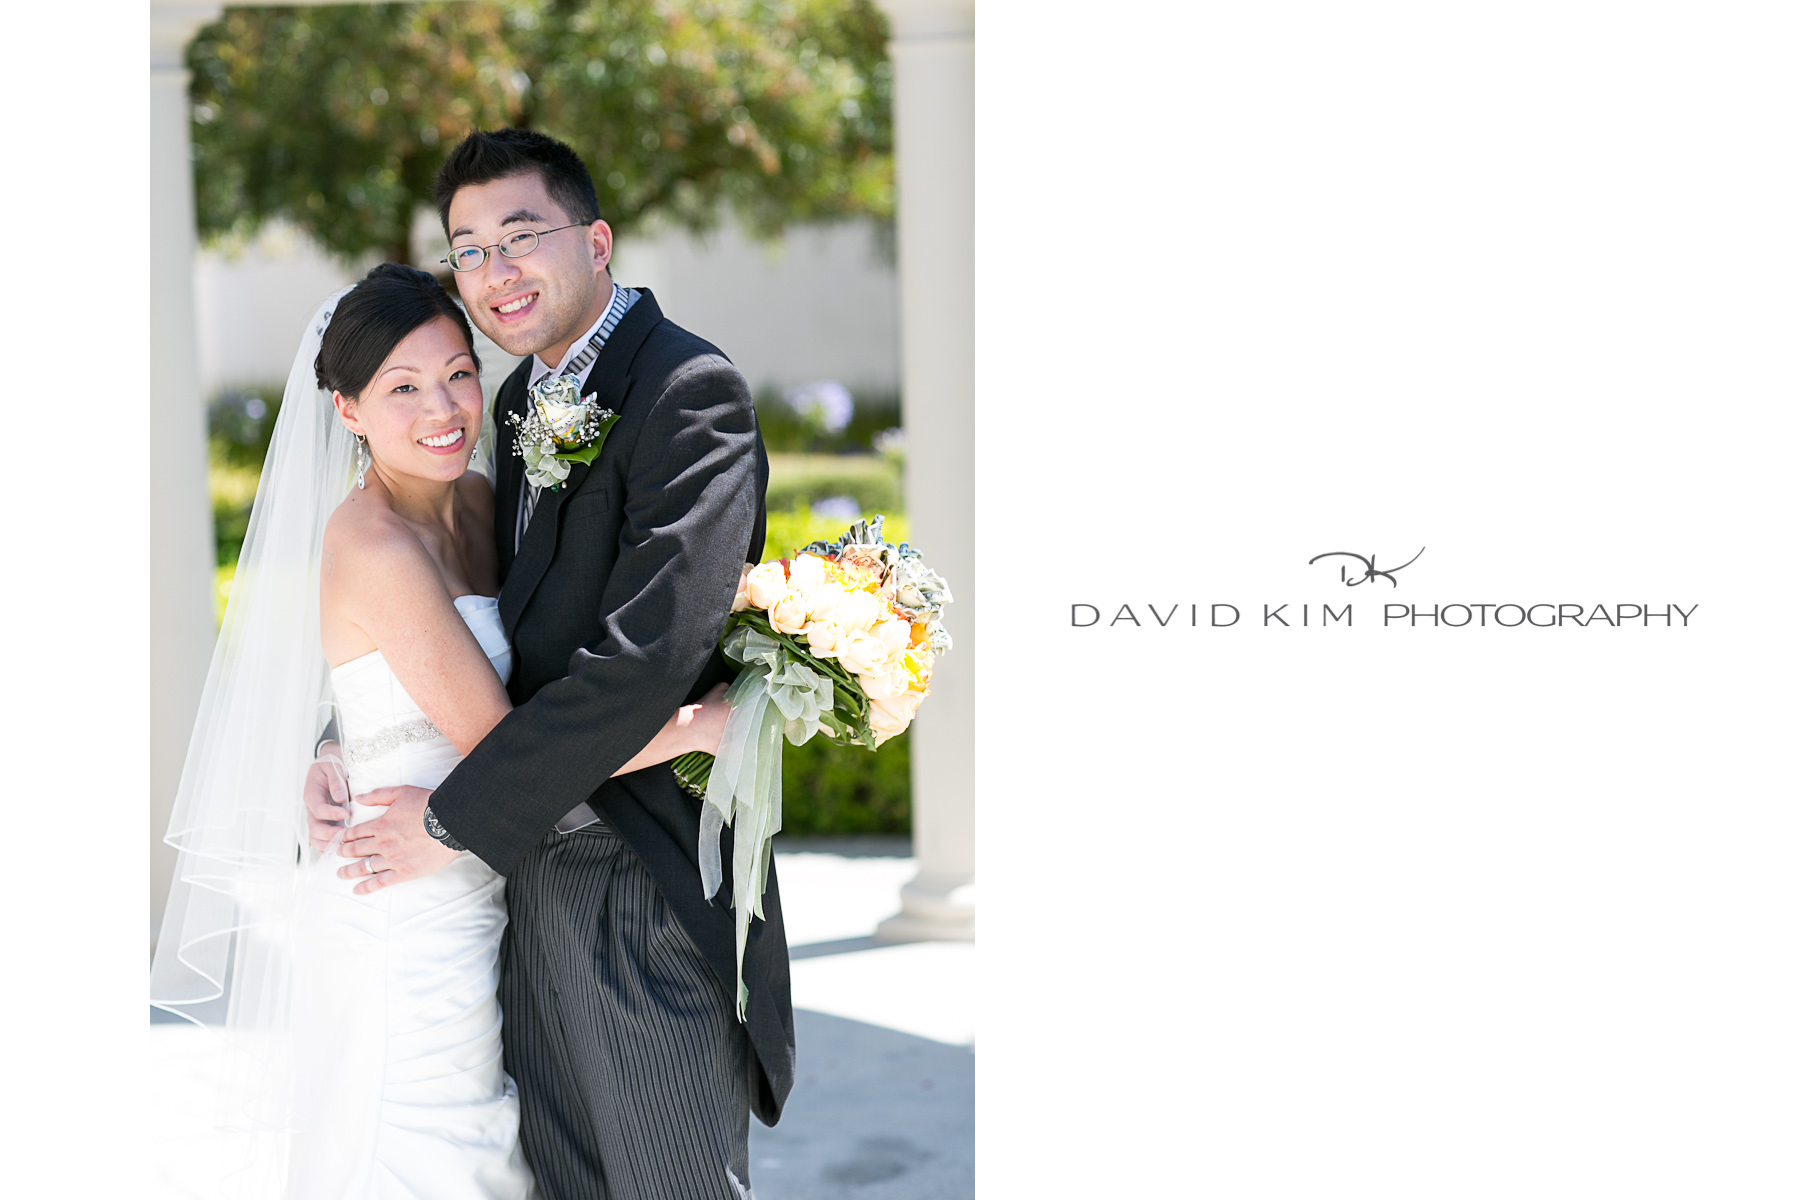 Joanna-Dave-008-8-san-francisco-photography-wedding-david-kim.jpg